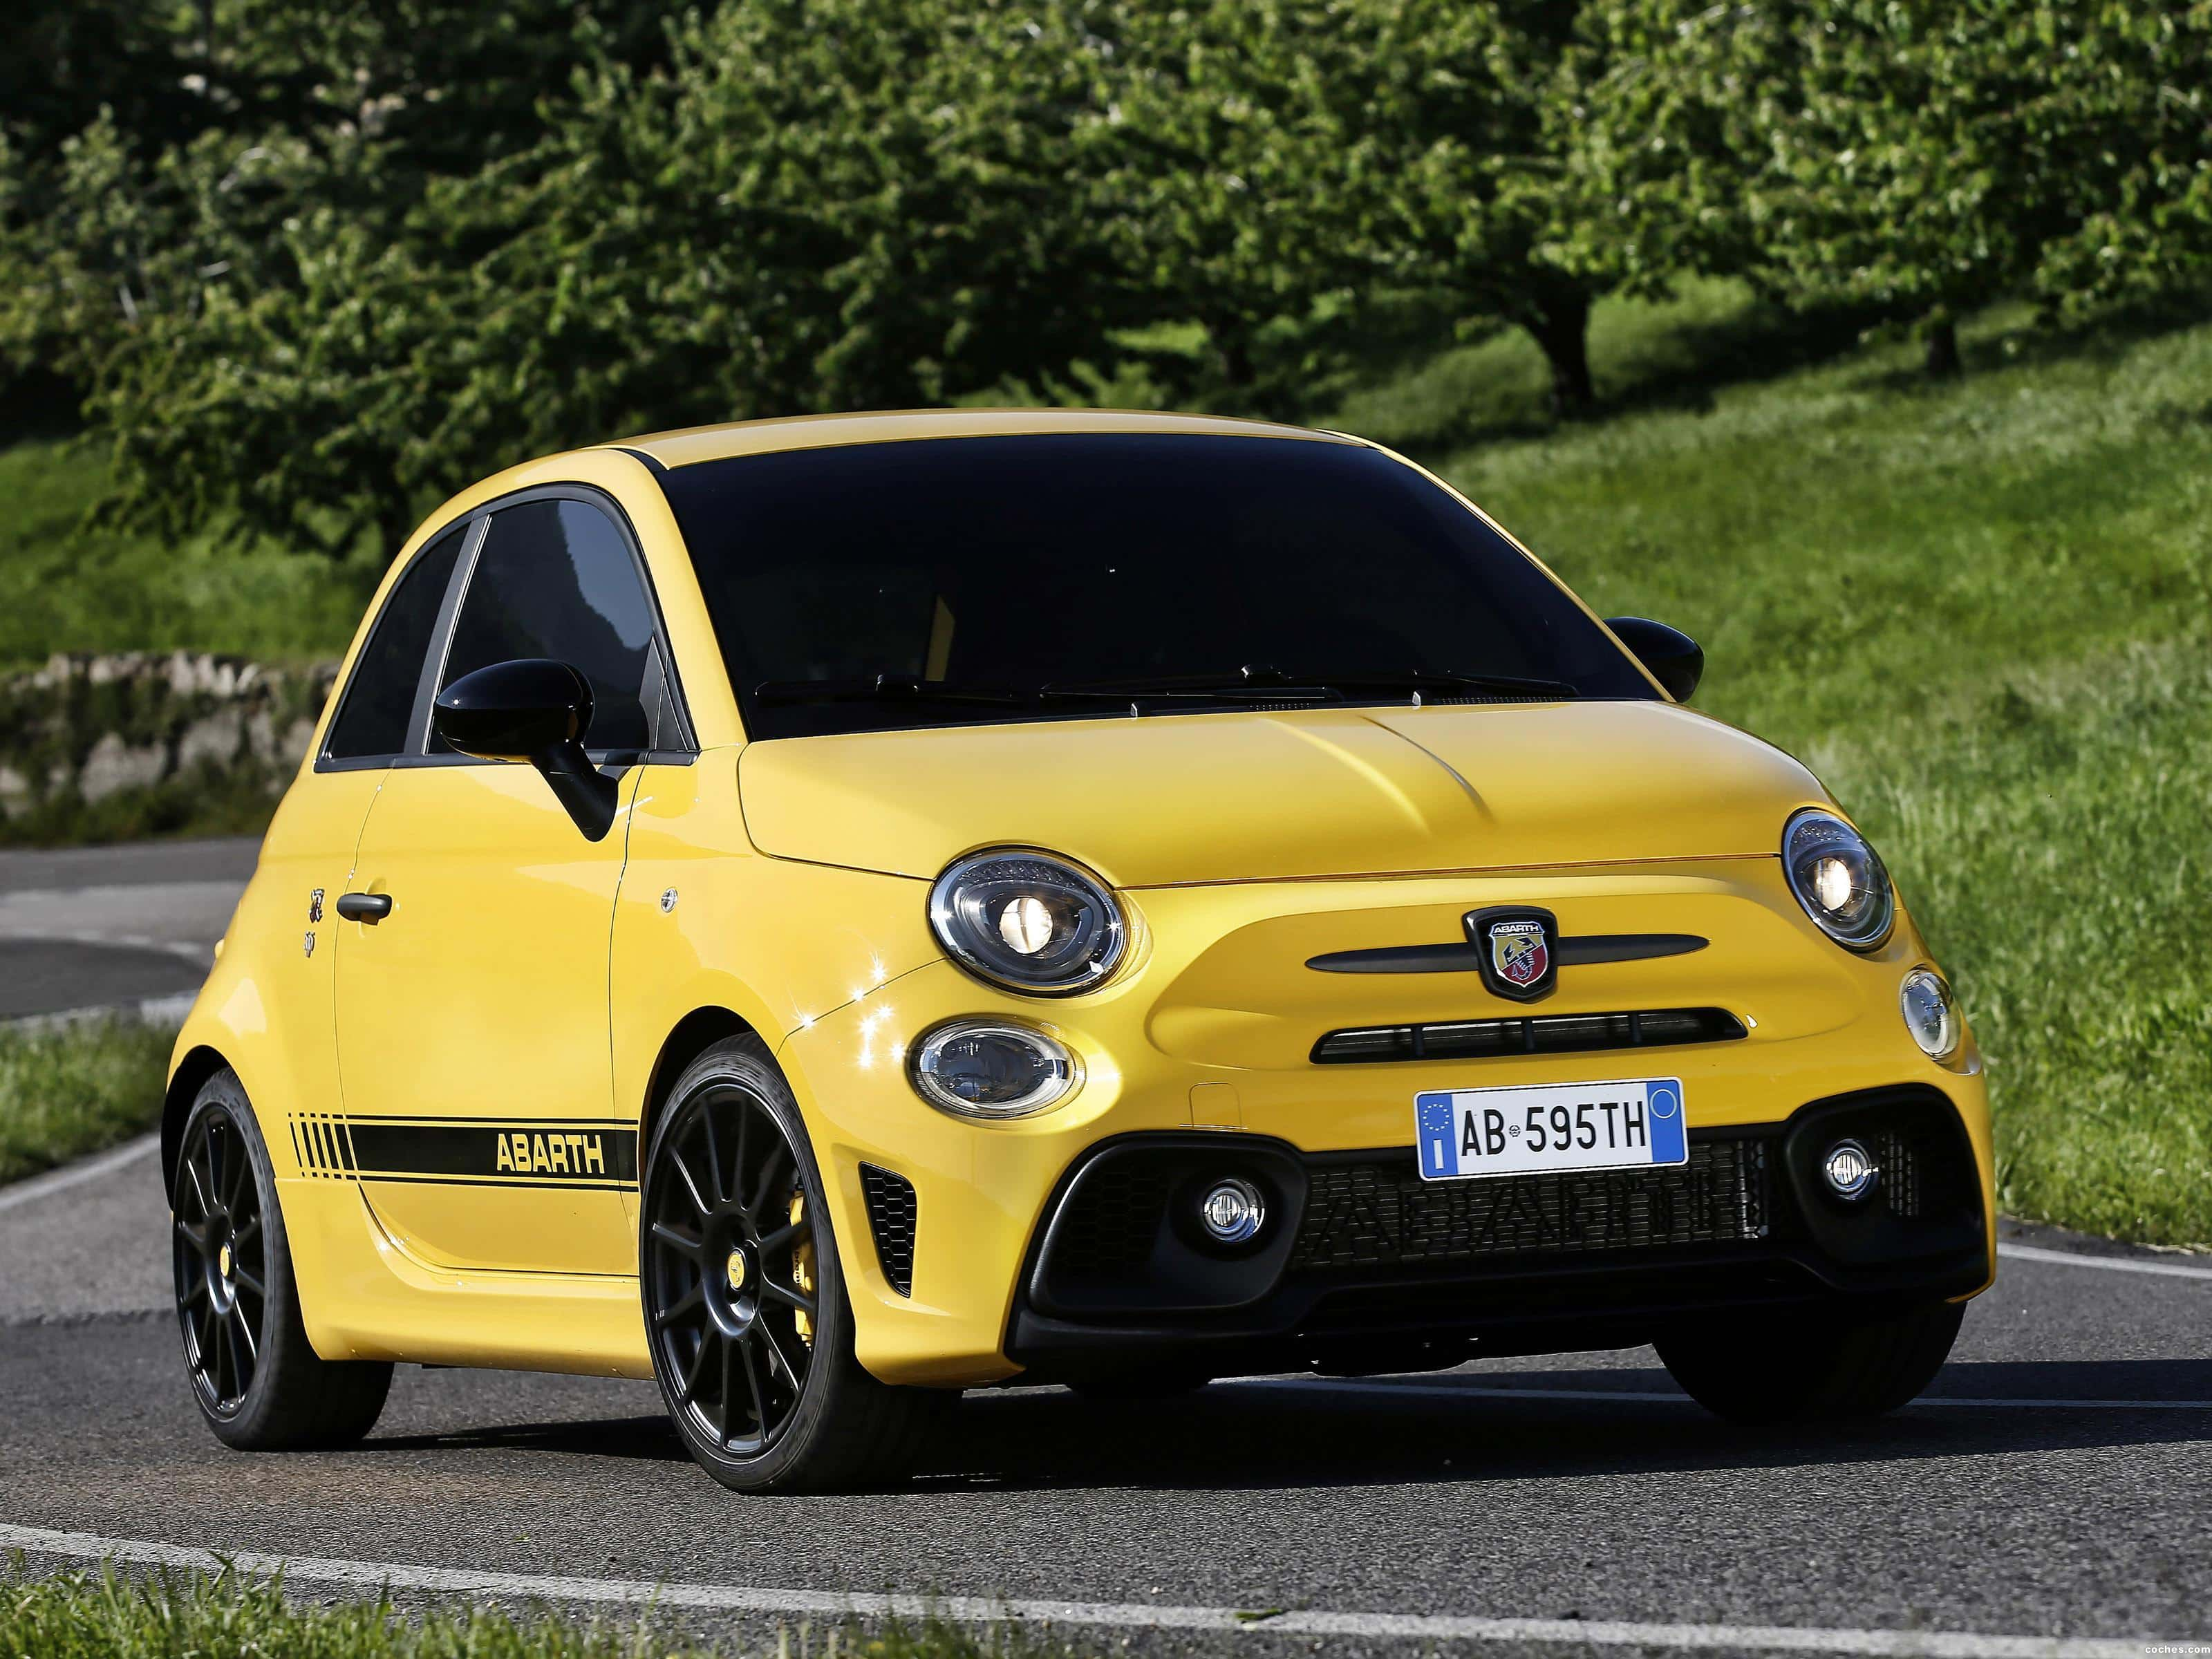 Rent a Fiat 500 Abarth 595 Competizione - Italy Luxury Car Hire